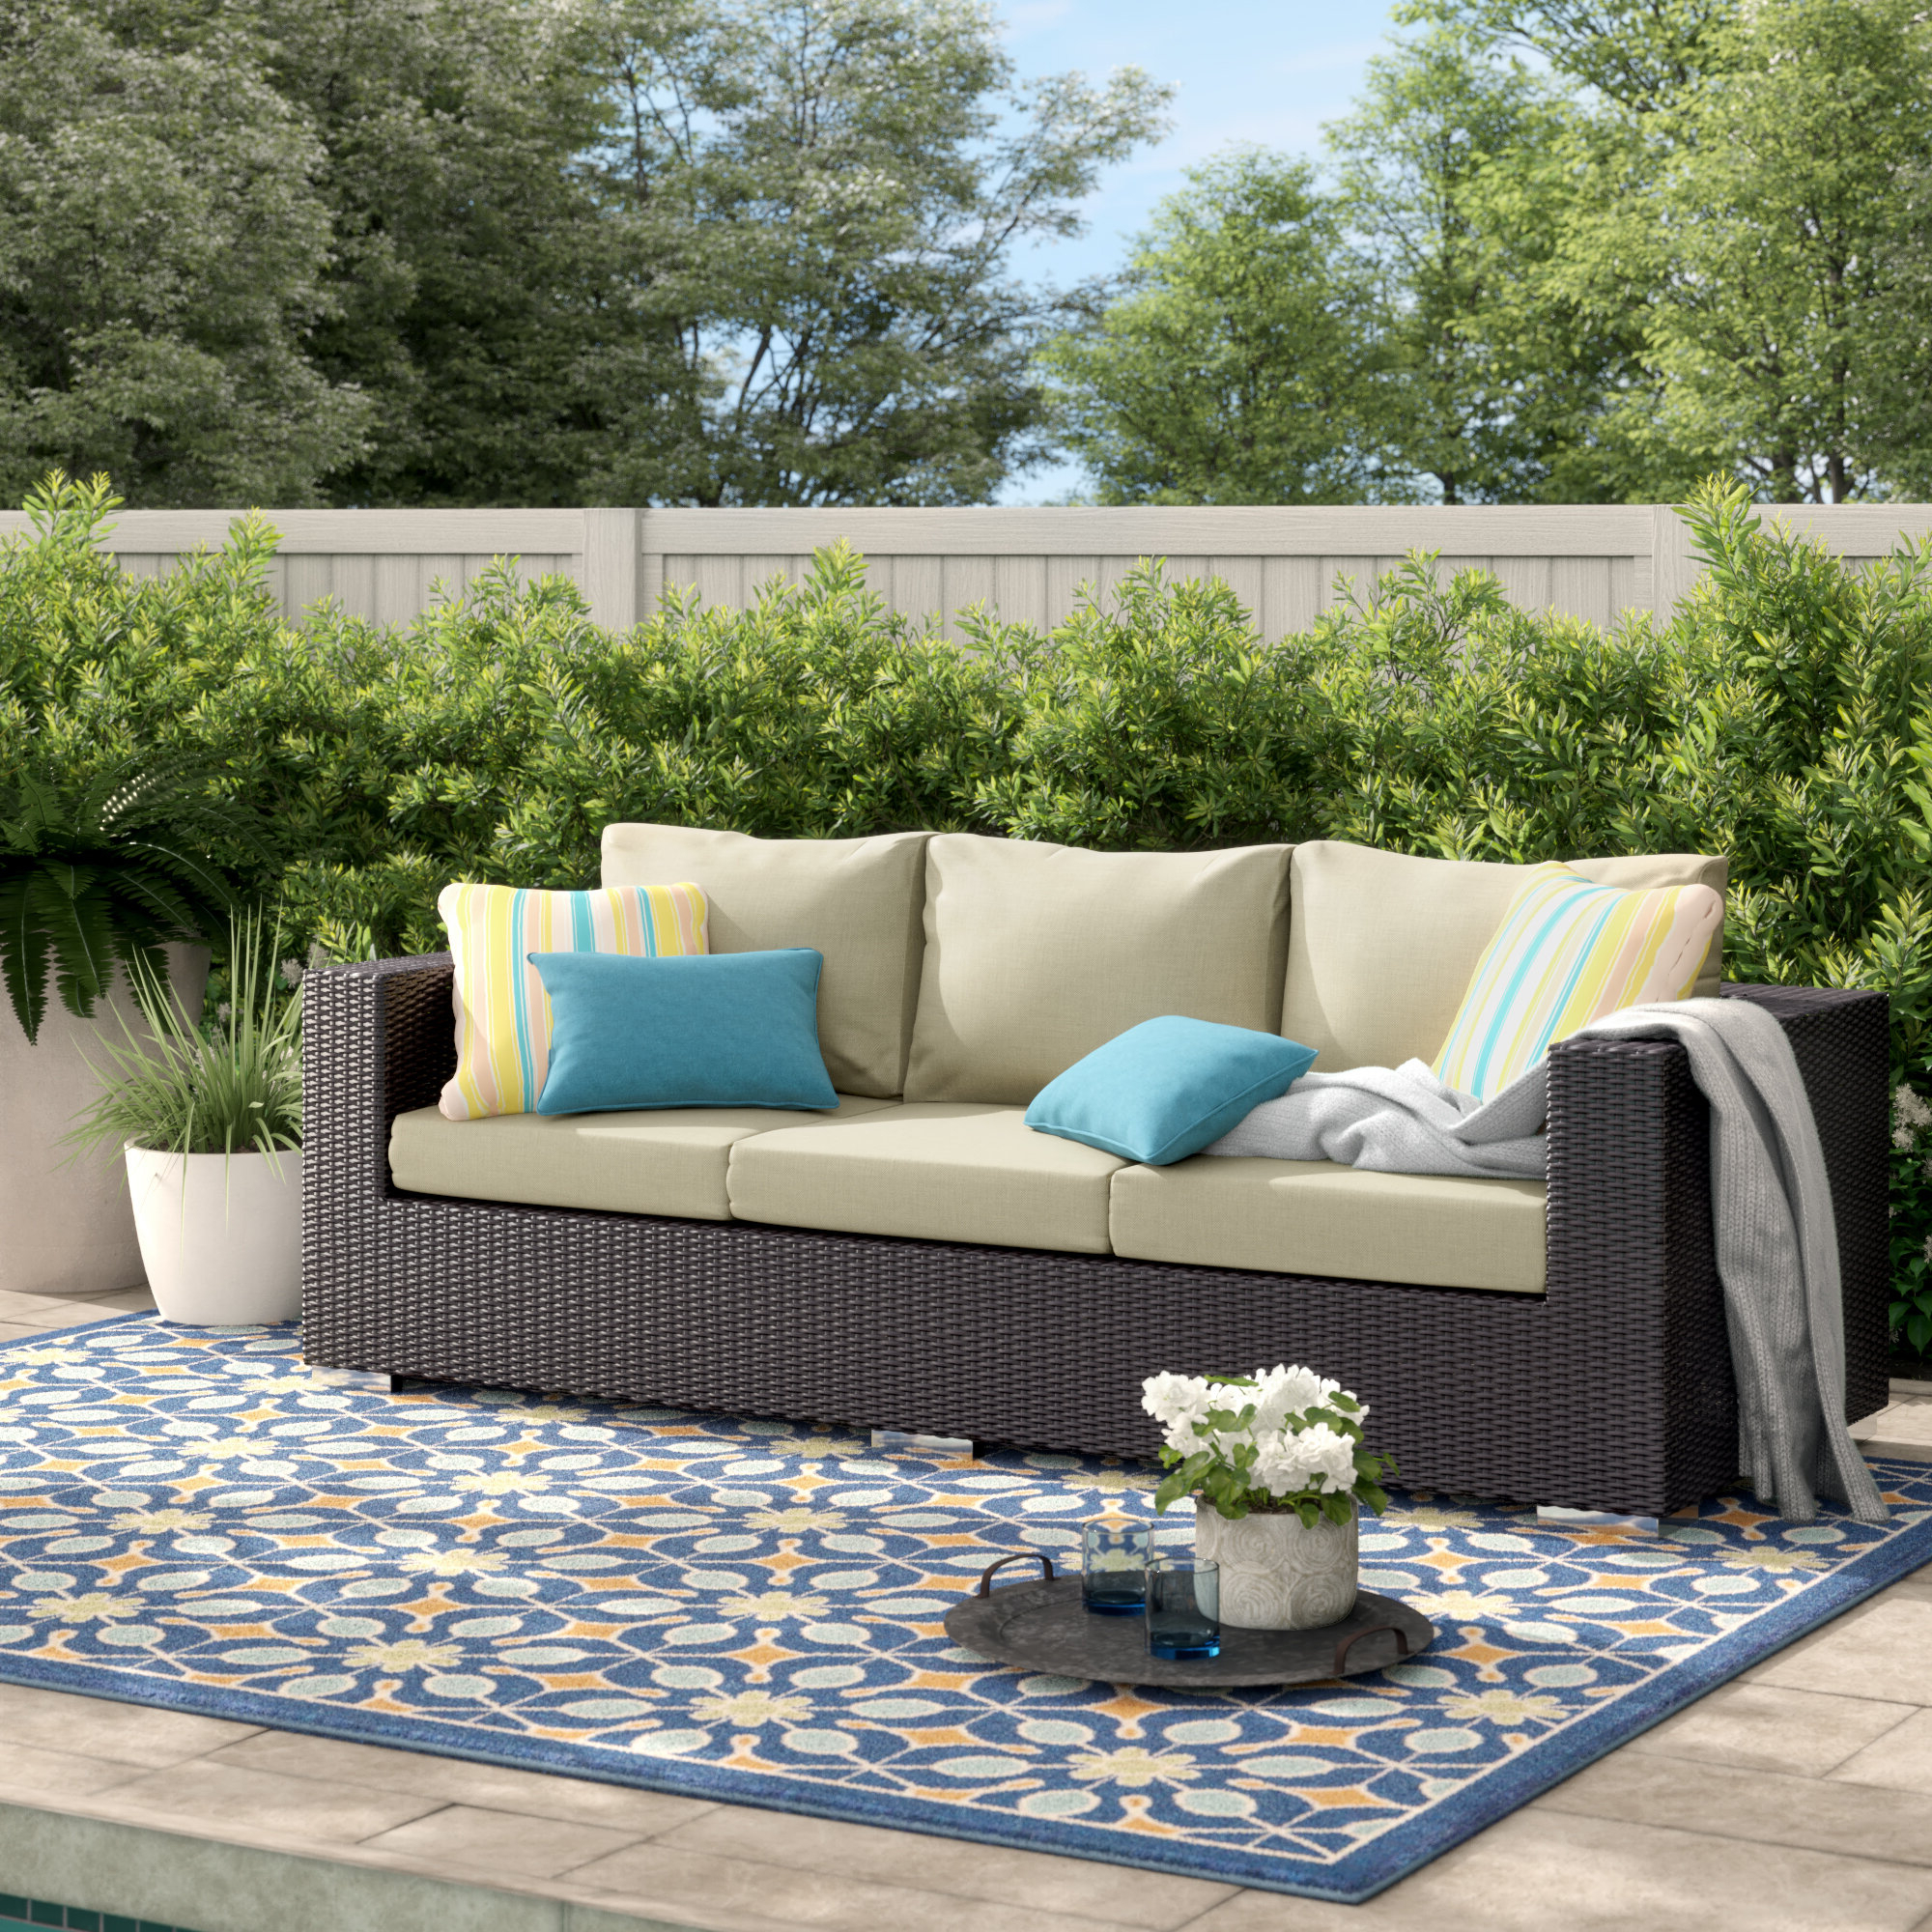 Brentwood Patio Sofas With Cushions Throughout Well Known Brentwood Patio Sofa With Cushions (View 5 of 18)